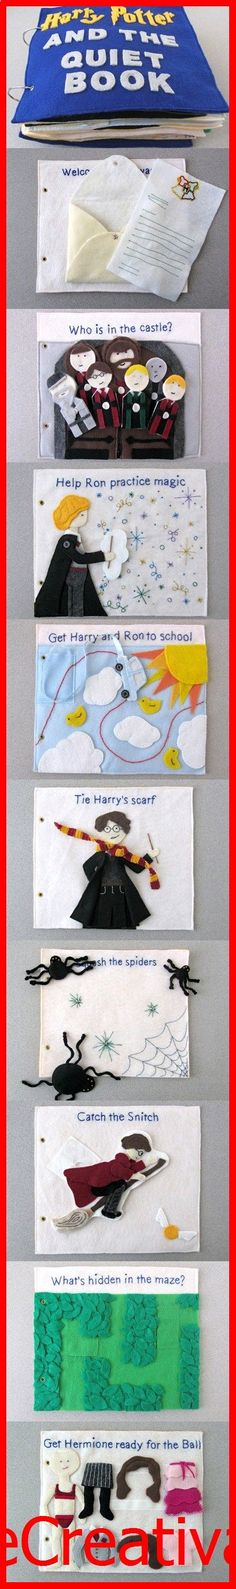 KhadeCreativa.com Harry Potter Quiet Book source by :http://pinterest.com/pin/48484133461013019/